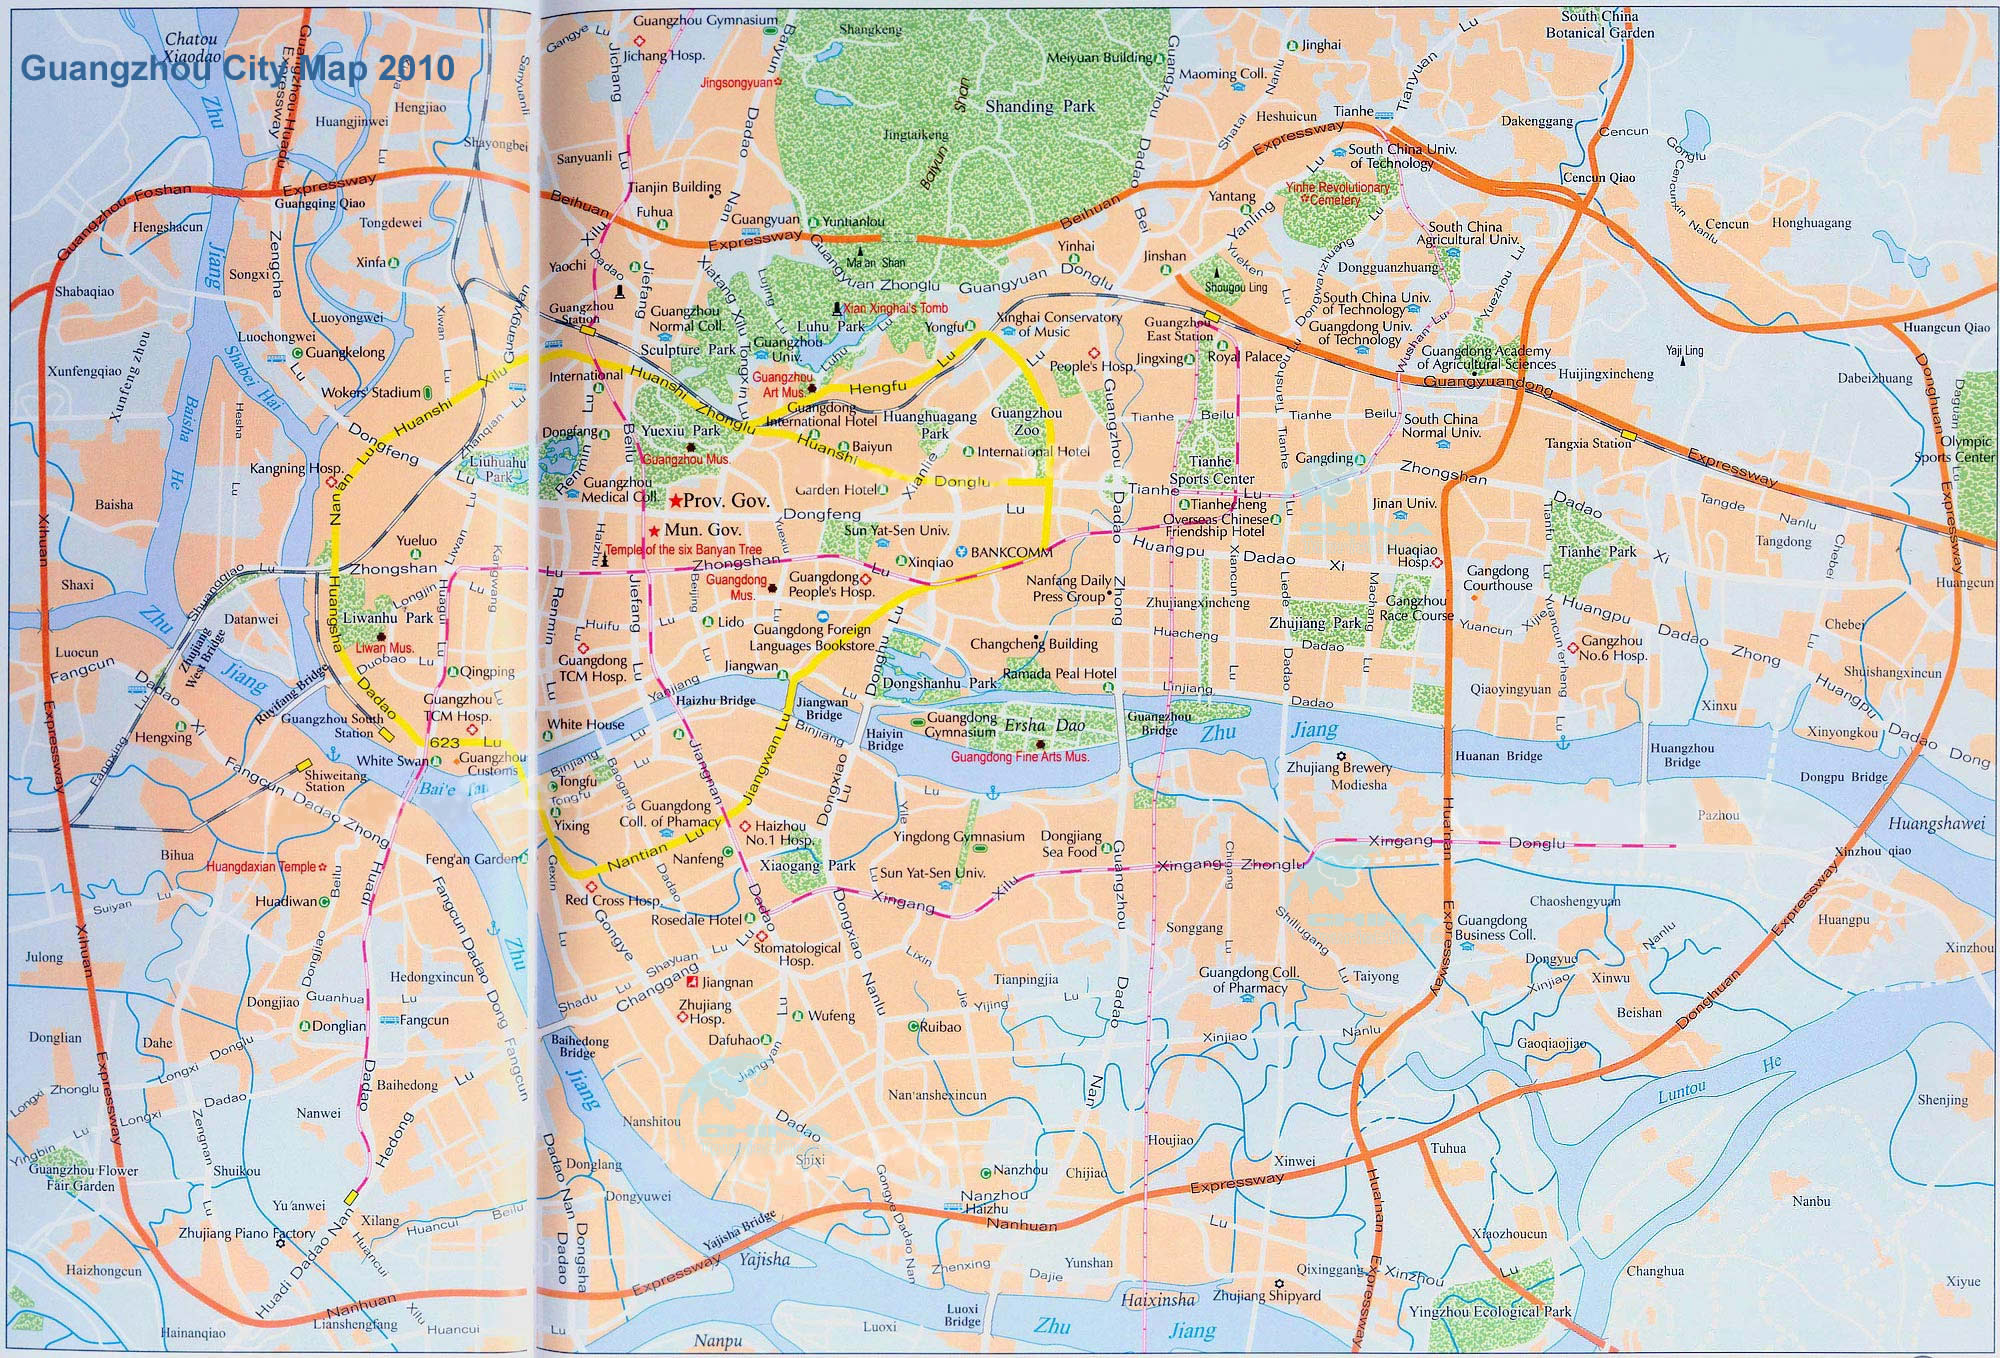 Guangzhou maps guangzhou city map guangzhou tourist map easy guangzhou city map gumiabroncs Image collections